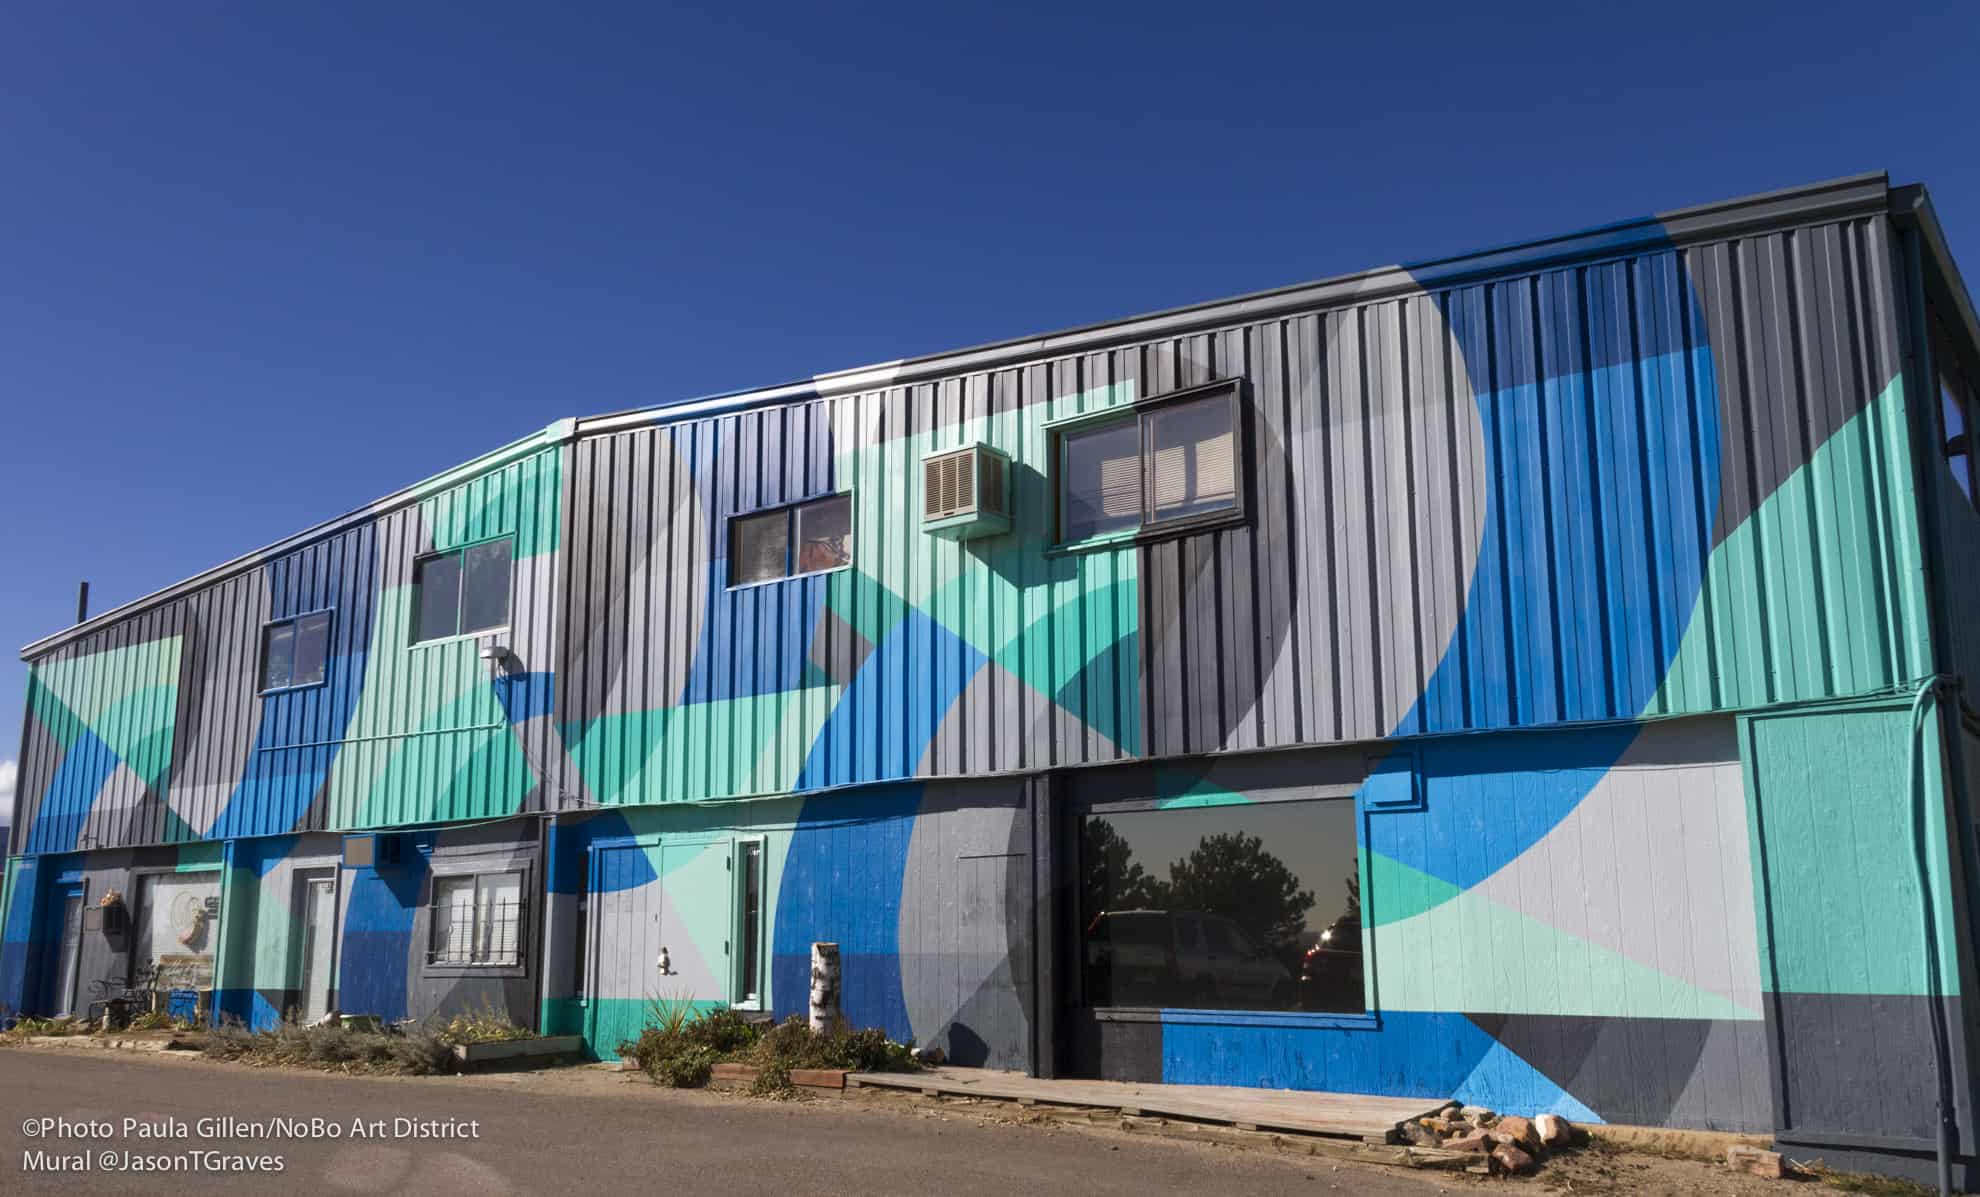 North Boudler Art District, NoBo, Welcome Mural, Jason T. Graves, 2019